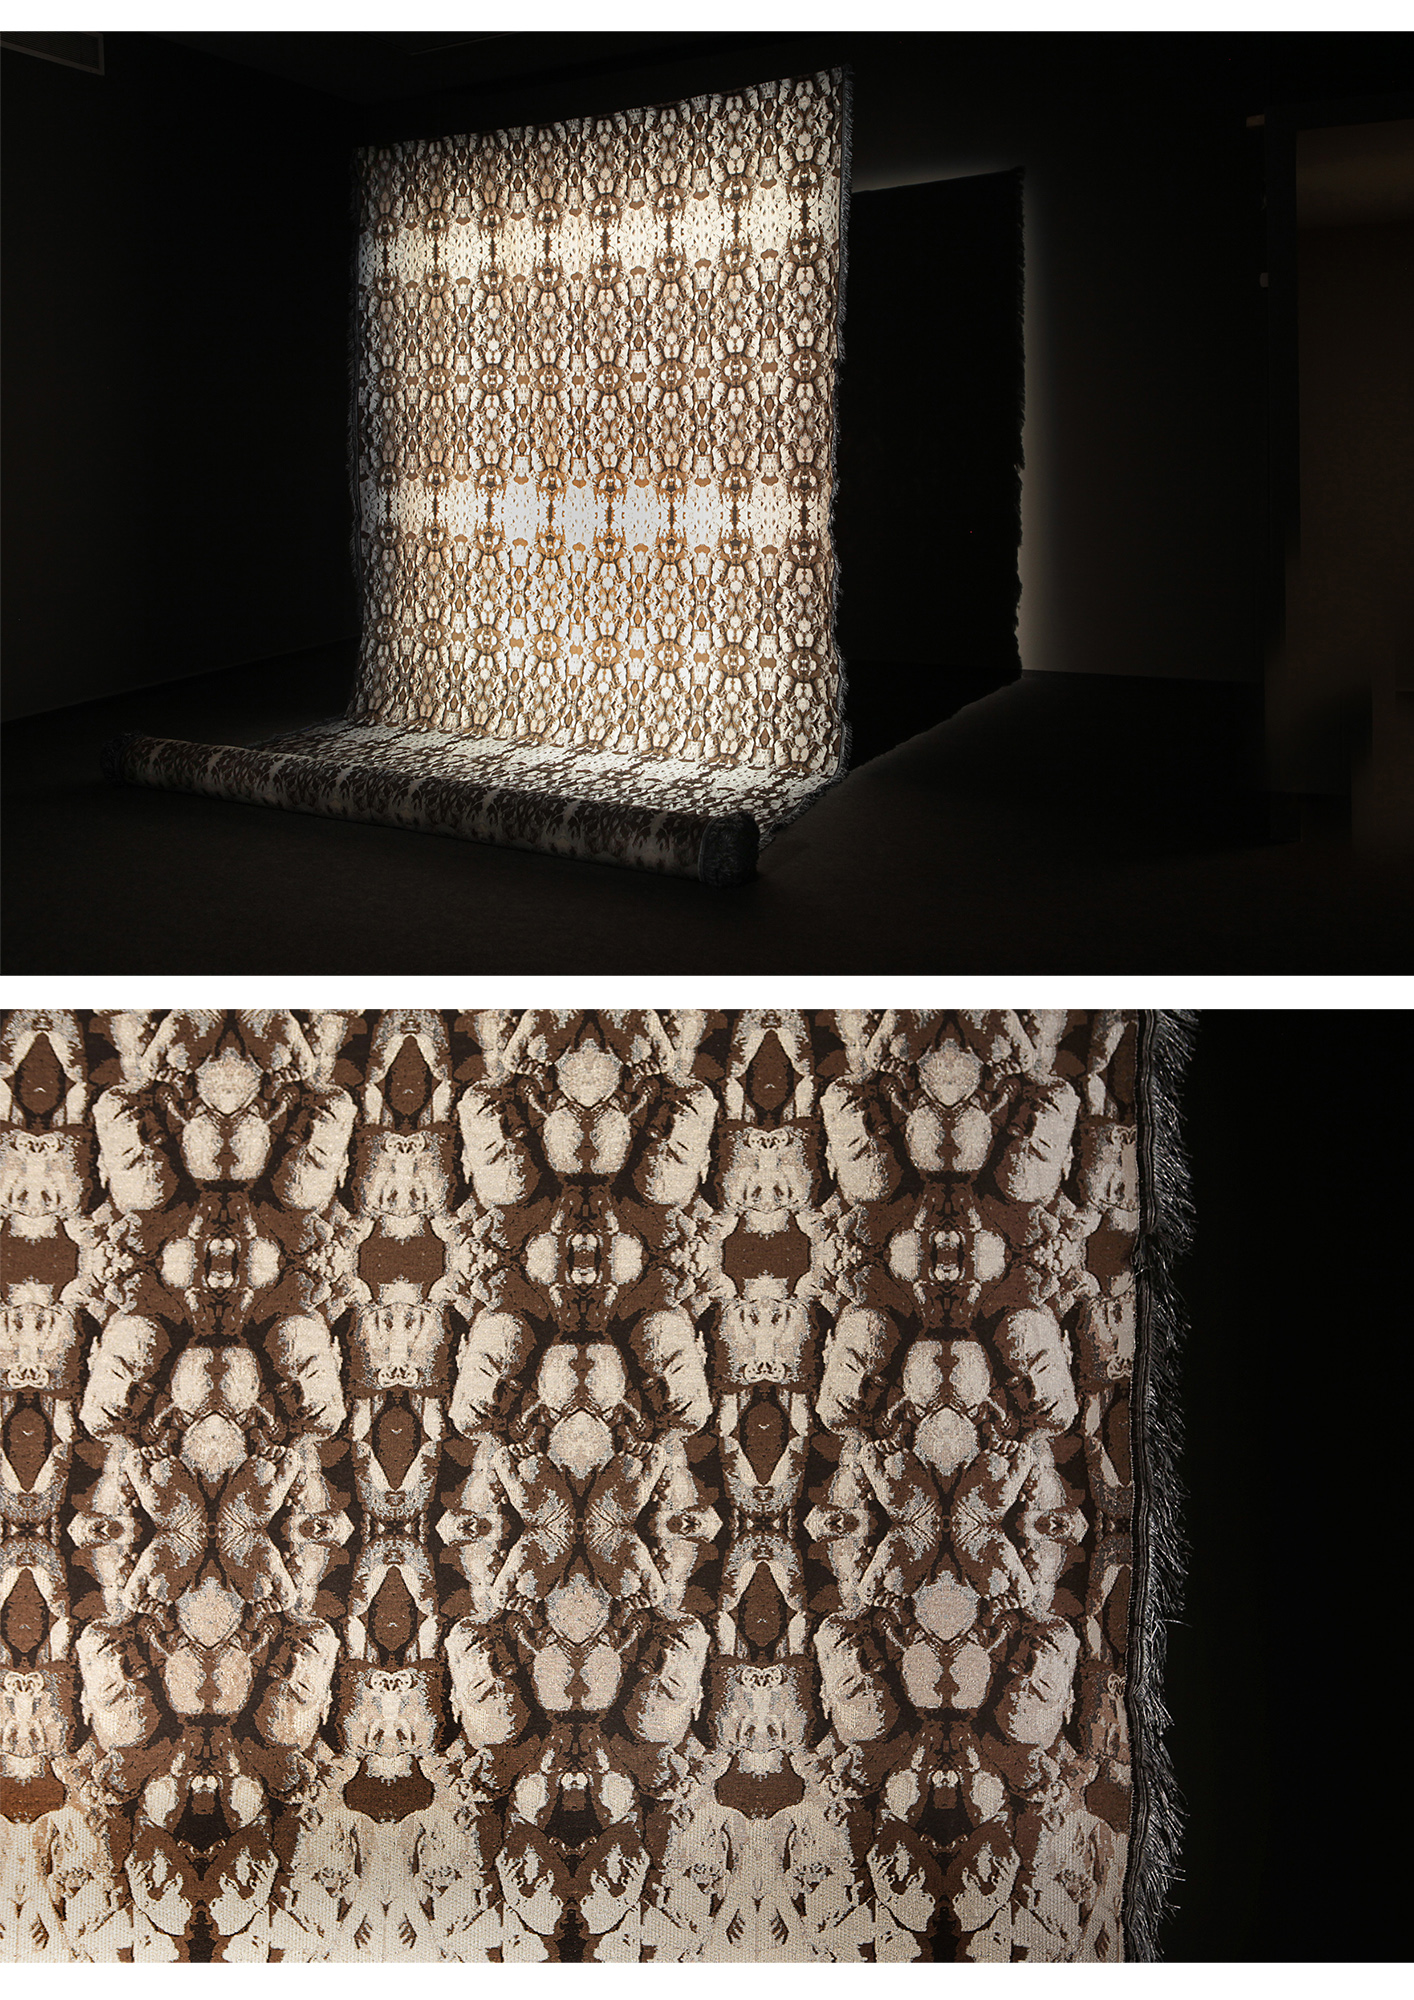 This Tactile Jacquard fabric incorporates images of a duplicated mass grave and entangles the tension between ethics and aesthetics.